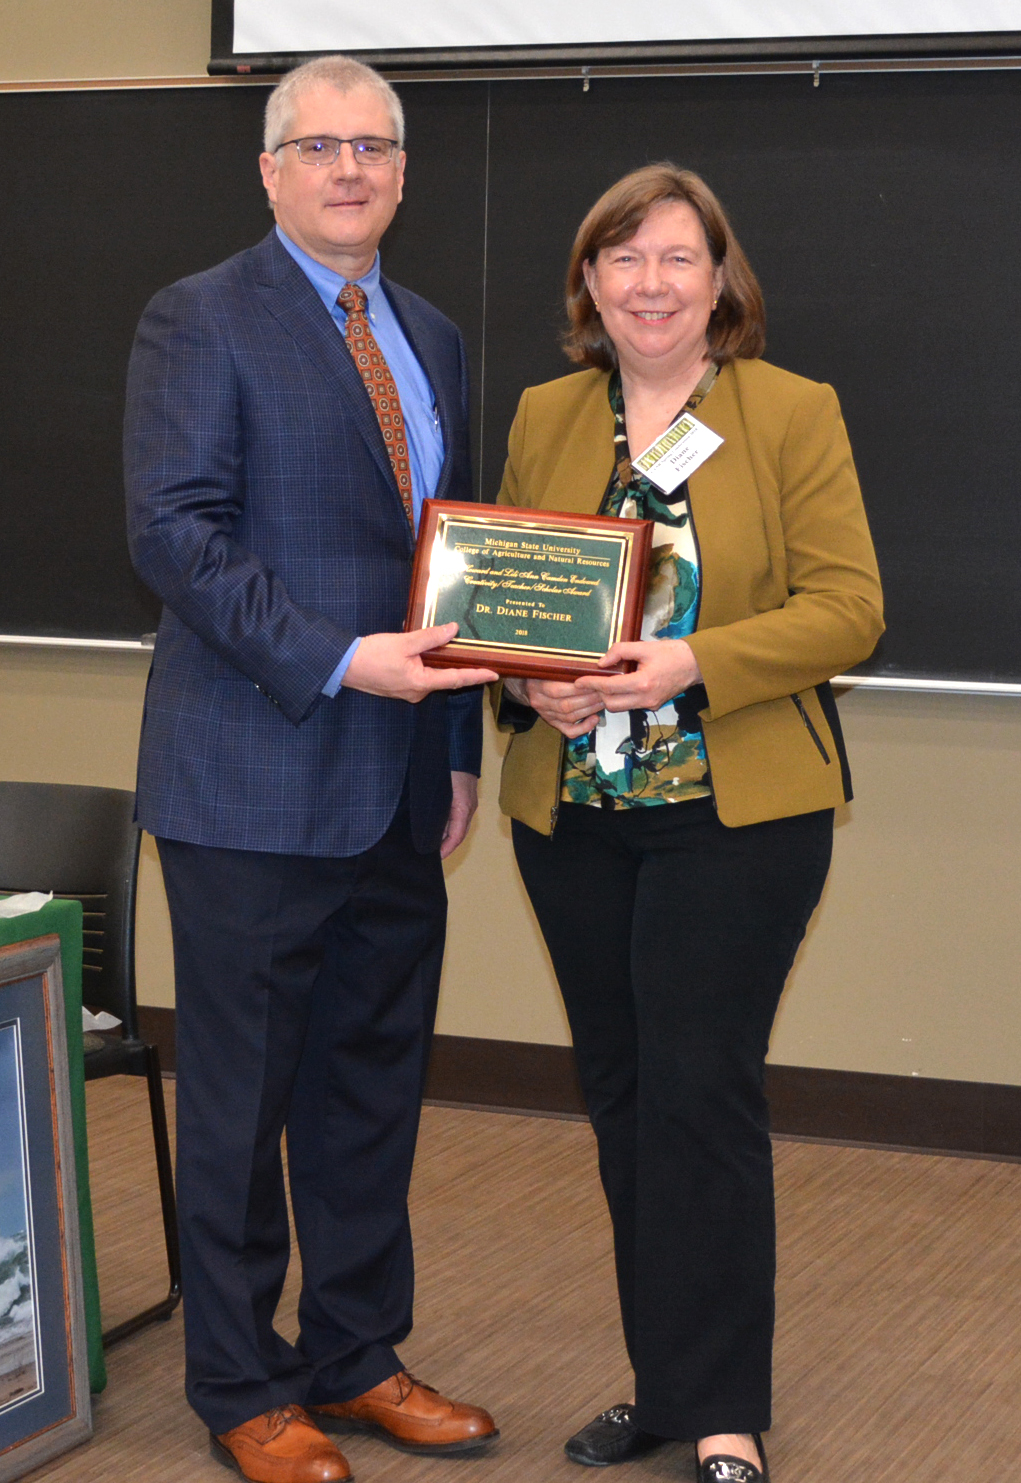 CANR faculty member Diane Fischer received the Camden award from Dean Ron Hendrick in 2018.